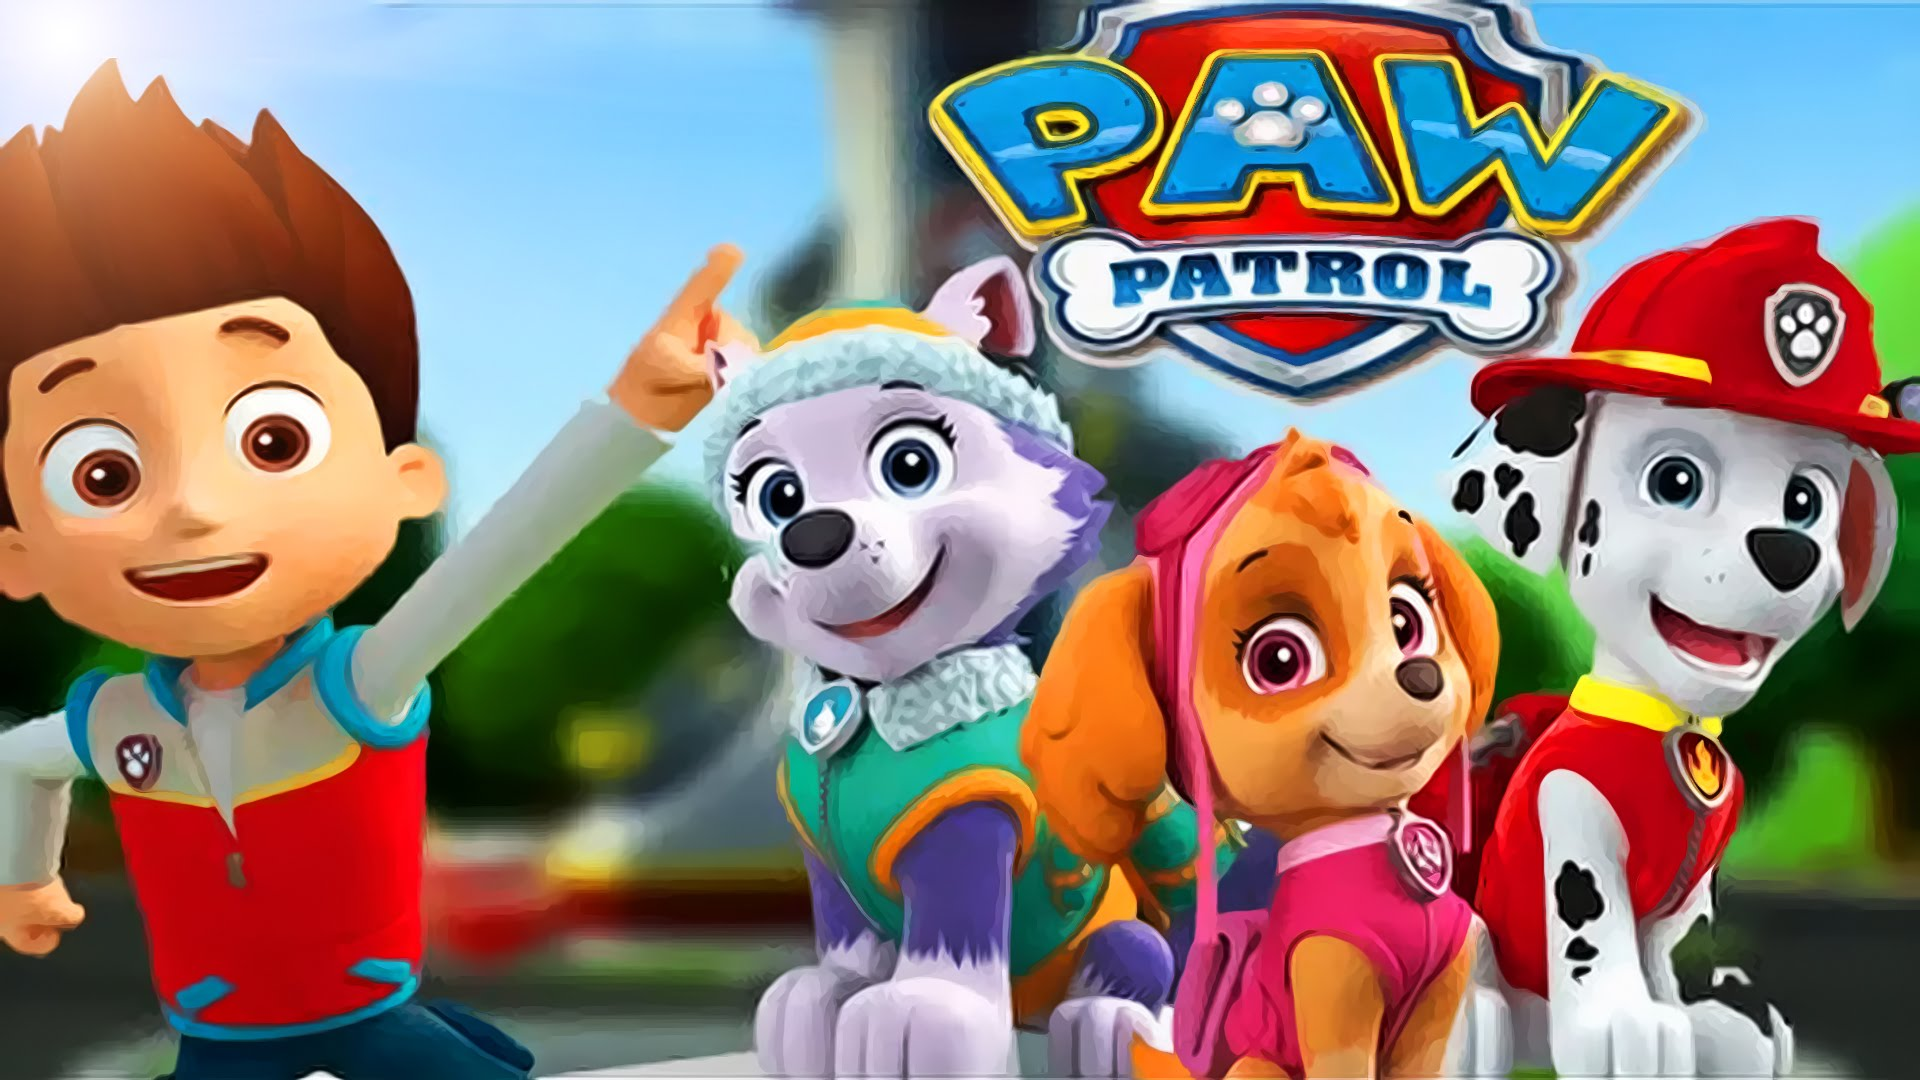 images about Paw patrol on Pinterest  Marshalls, Paw patrol 1920x1080